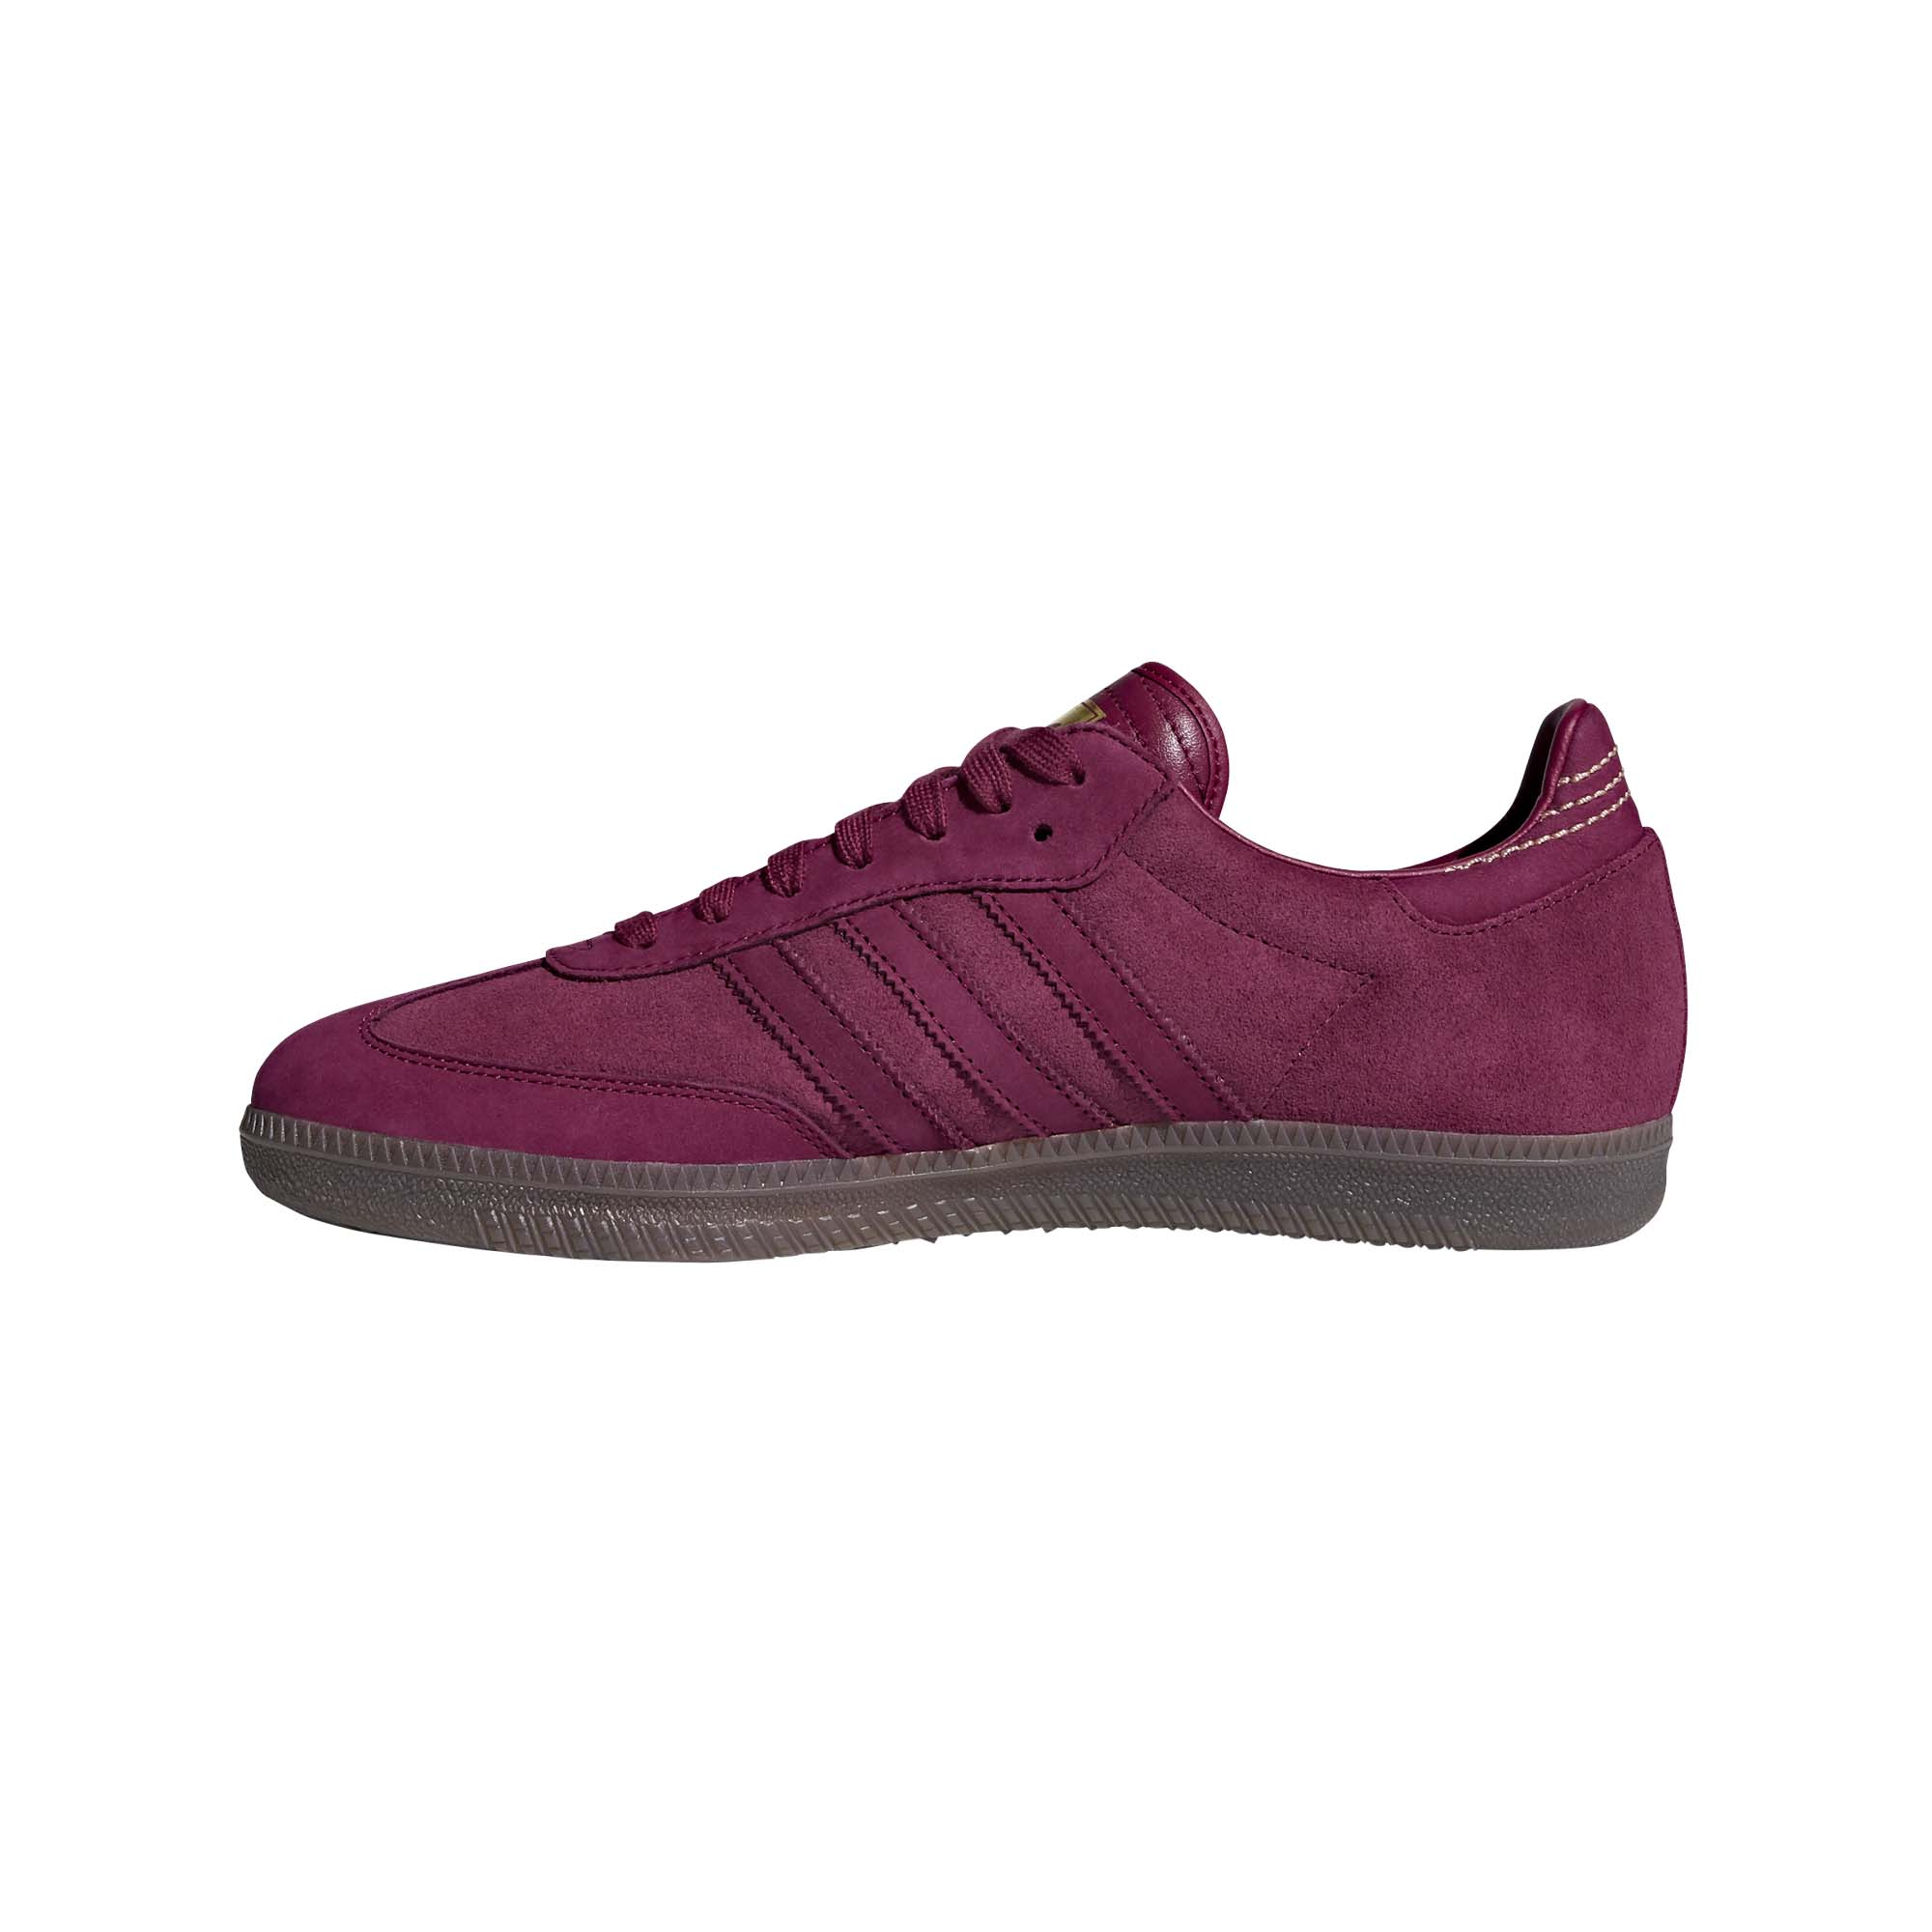 Implacable Salida período  נעלי אדידס סמבה לגברים - ADIDAS SAMBA FB MYSTERY RUBY SHOES